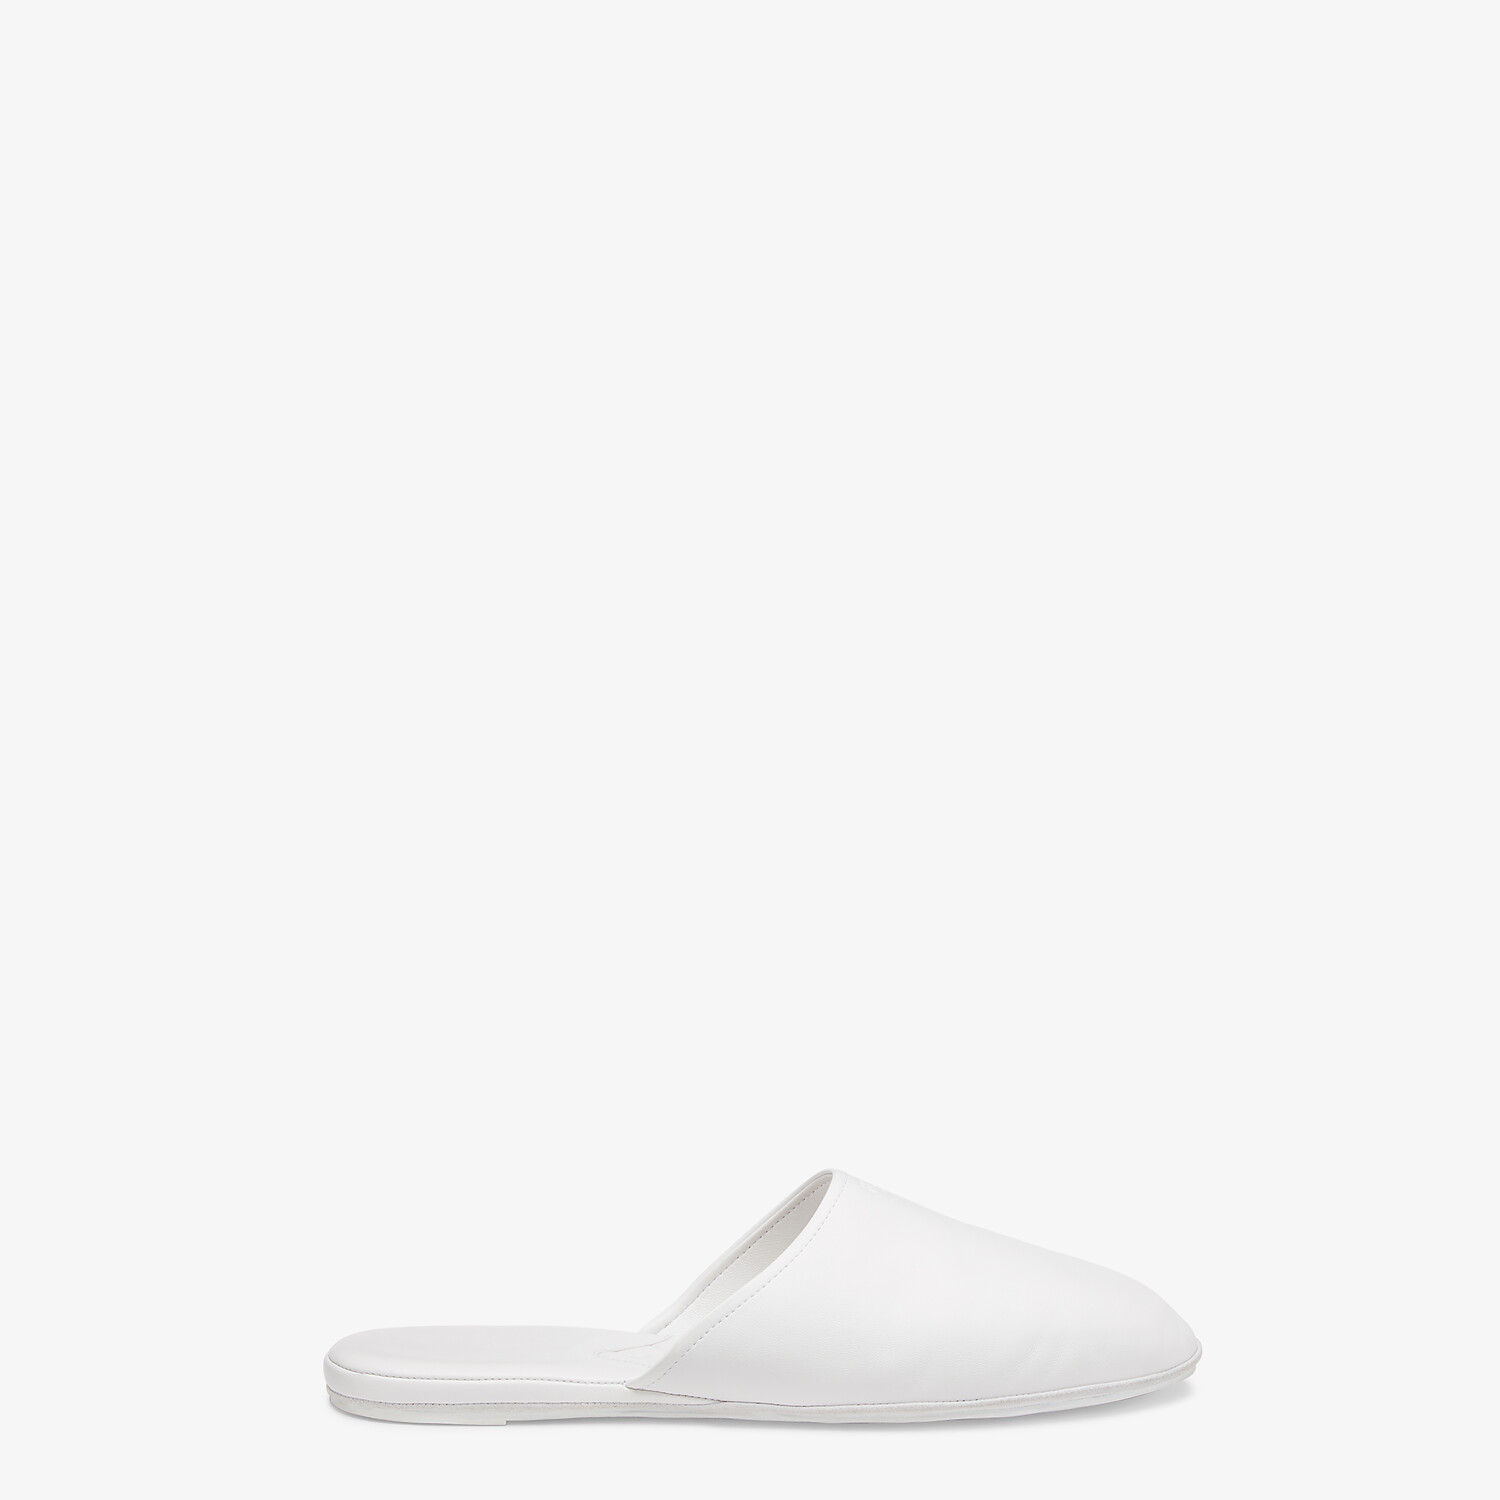 FENDI SLIPPERS - White nappa leather mules - view 1 detail